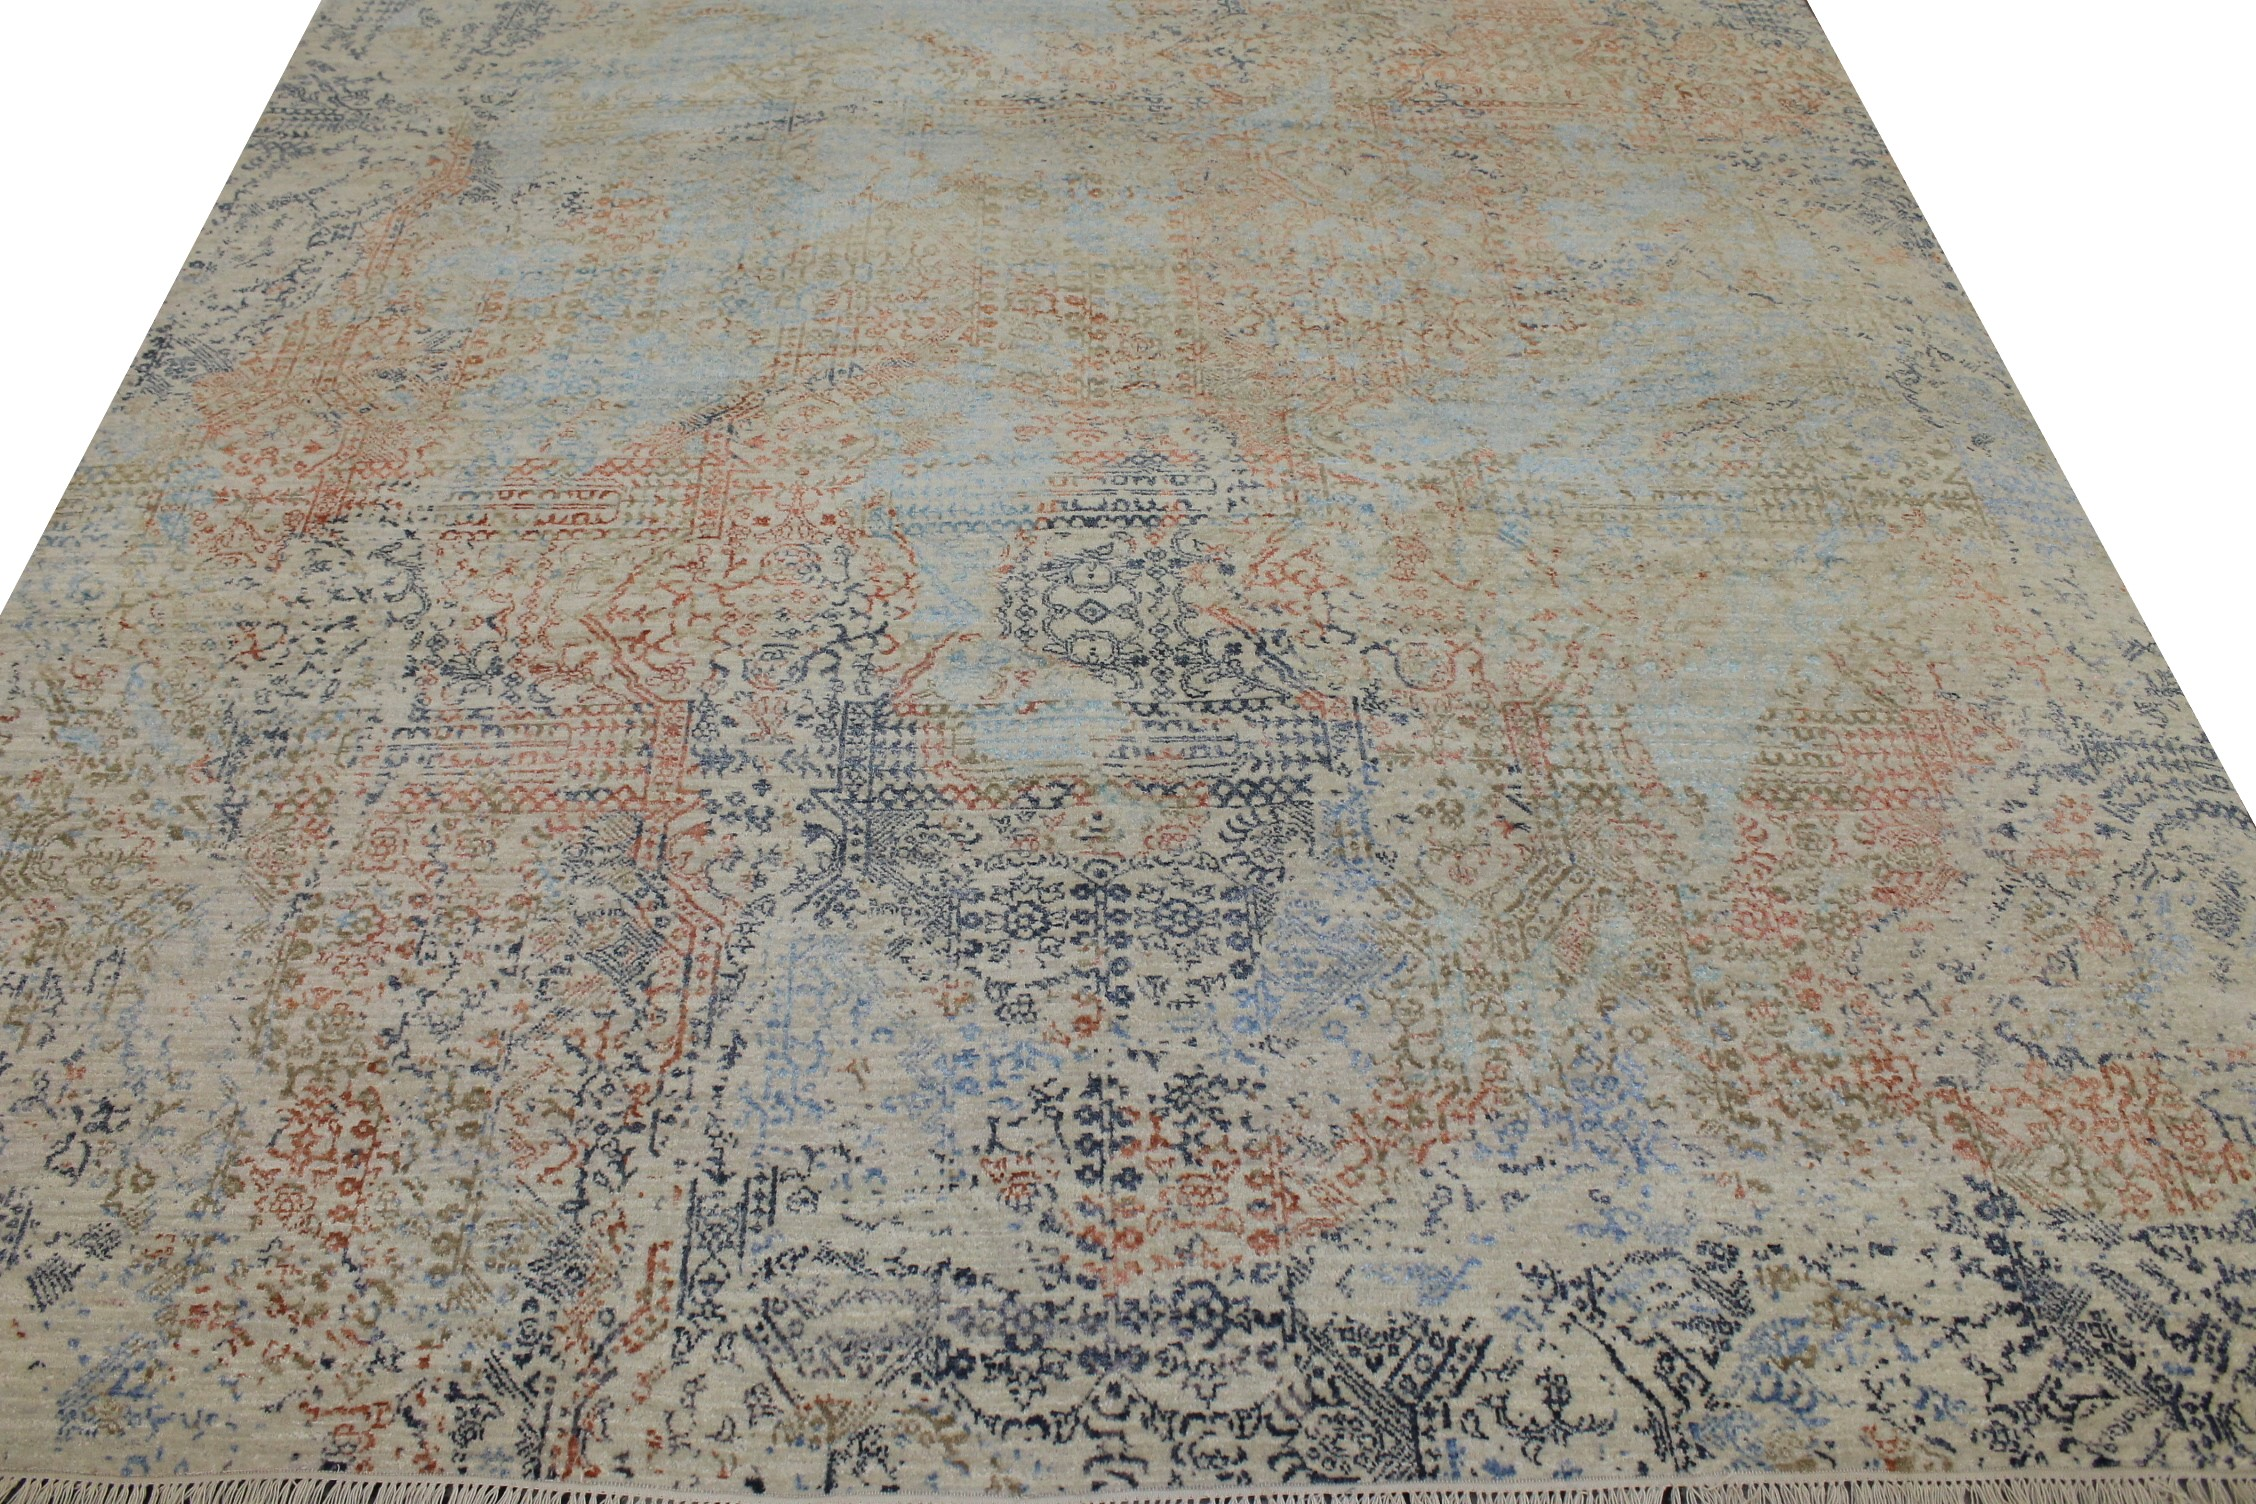 8x10  Hand Knotted Wool Area Rug - MR022845